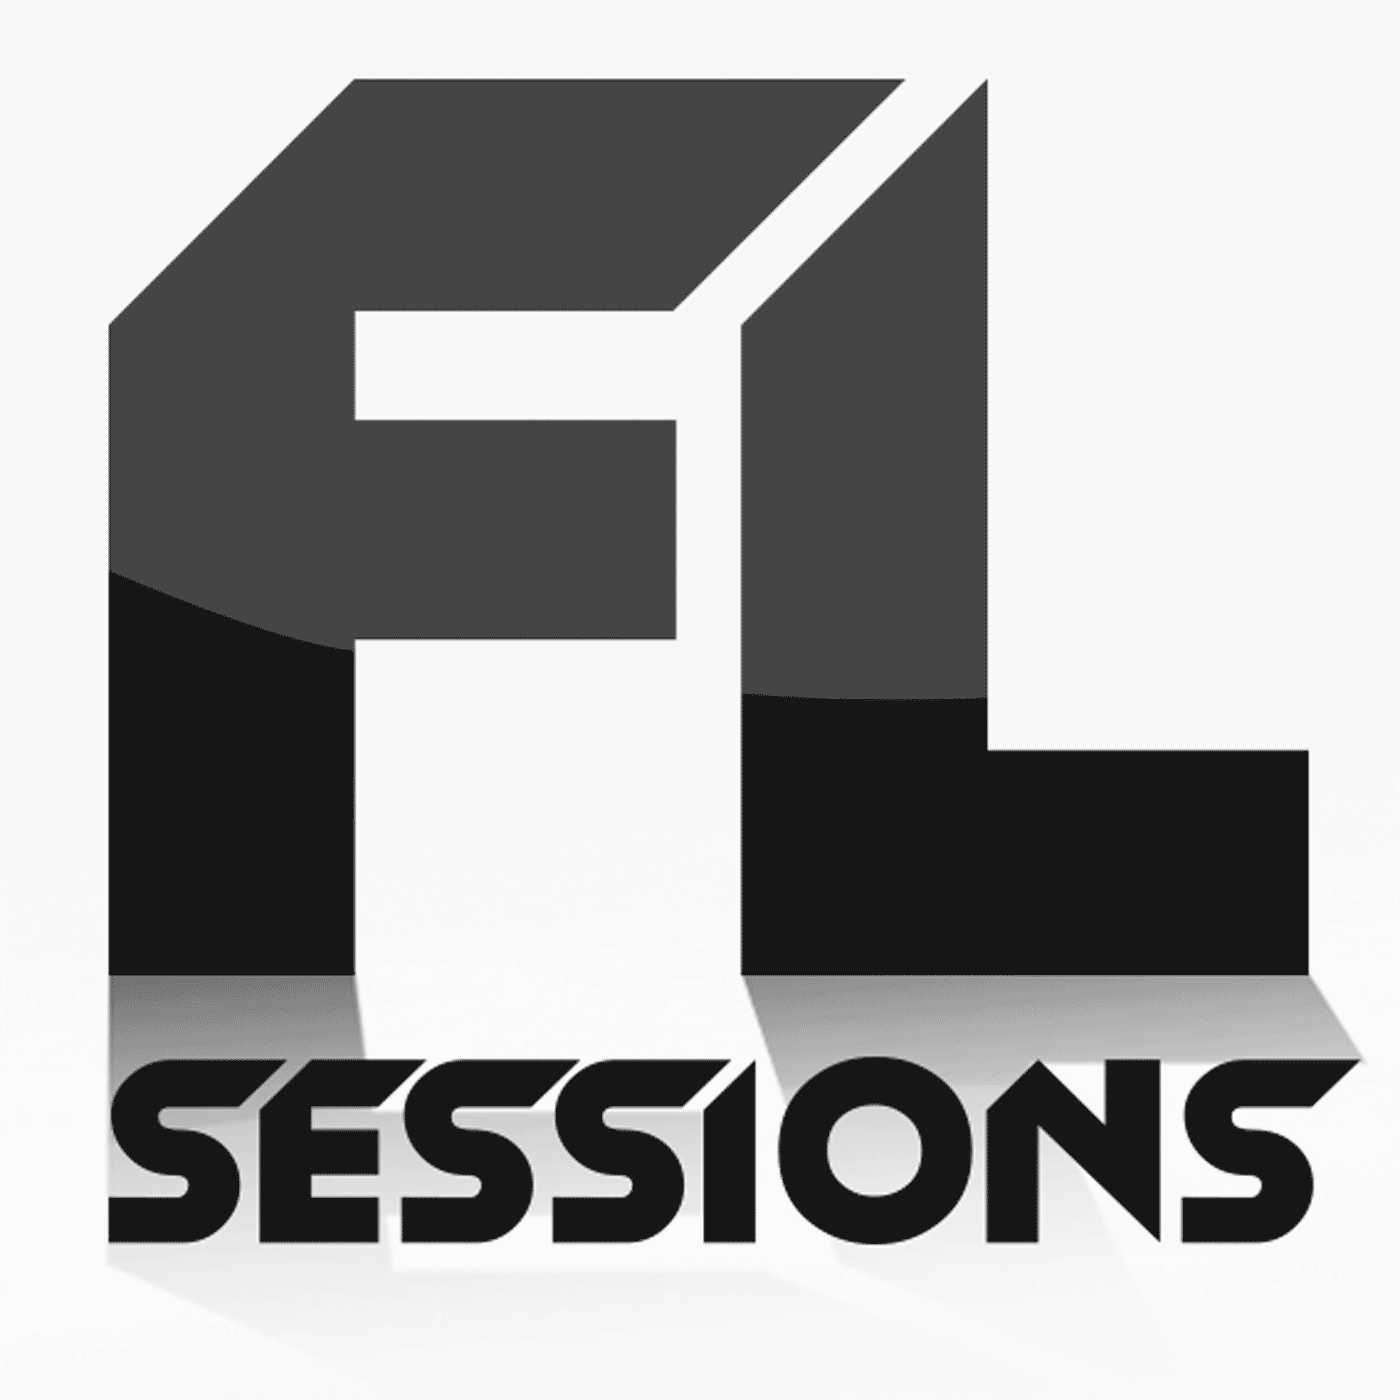 FRONTLOAD Sessions - Official Podcast